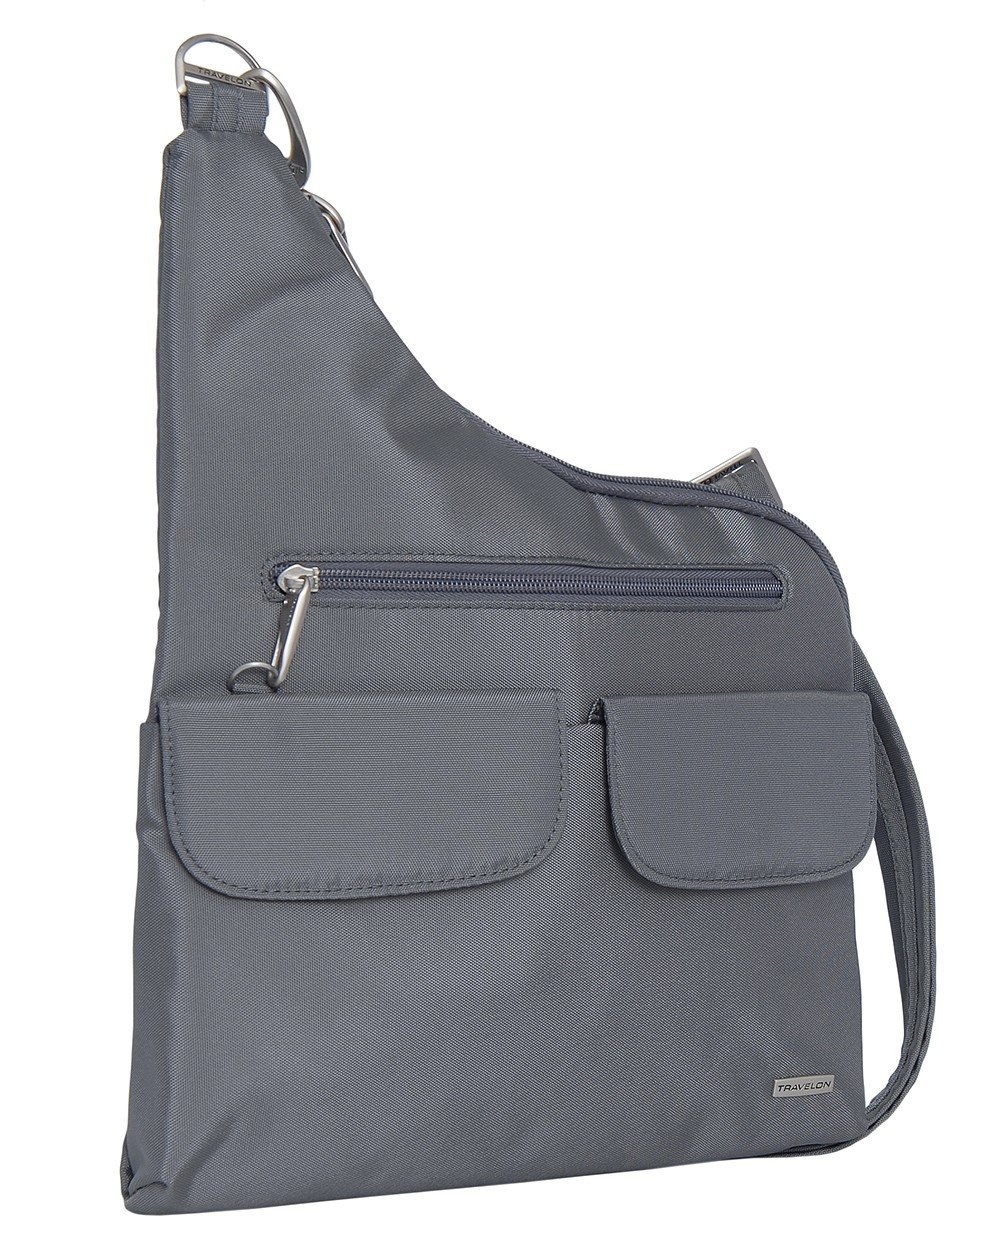 Travelon Anti-Theft Cross Body Bag Grey